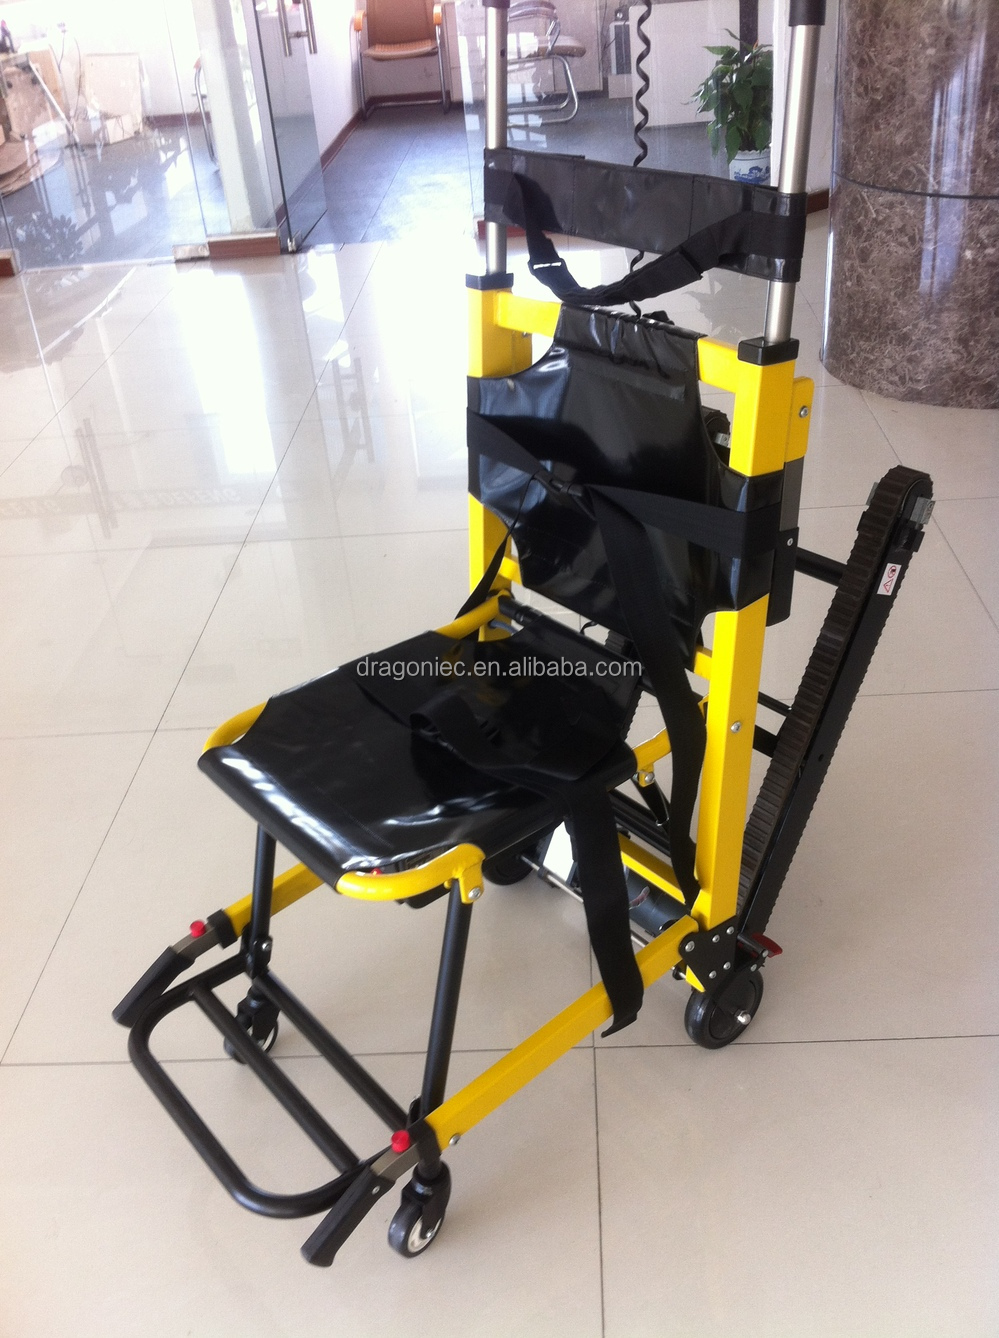 Dw st003a lightweight electric folding power stair for Motorized wheelchair stair climber